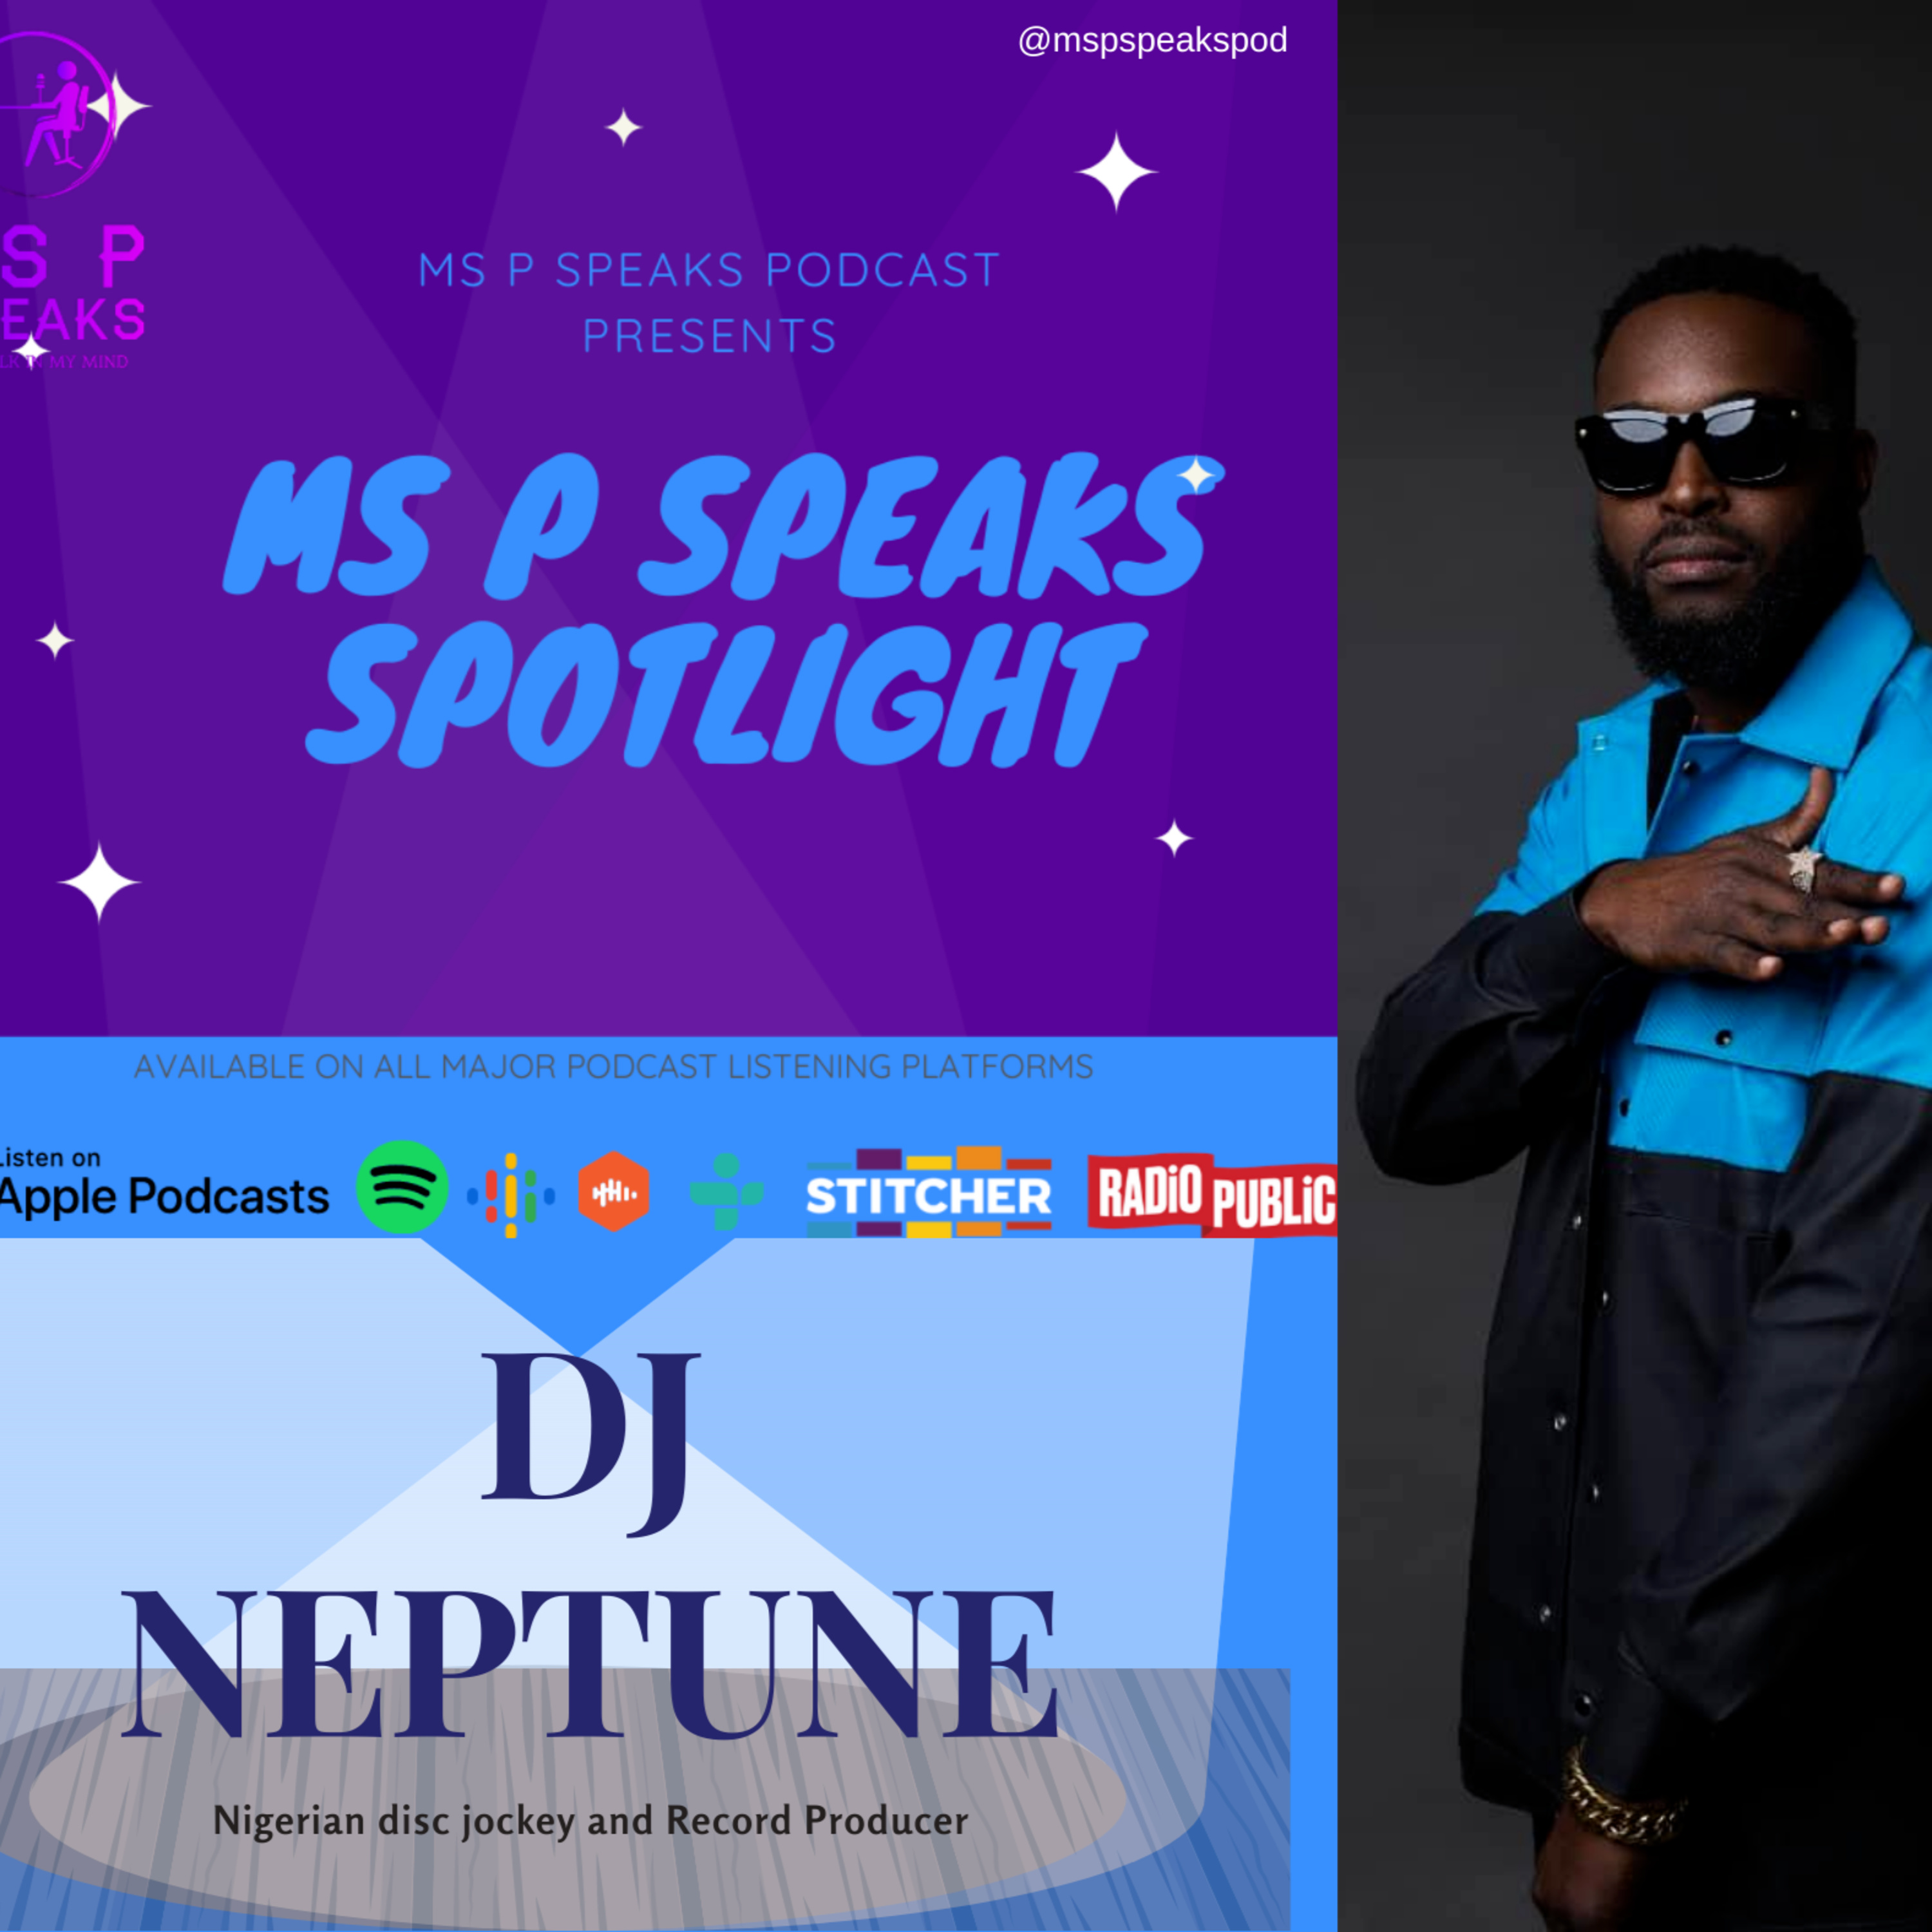 Ms P Speaks Spotlight Presents DJ Neptune